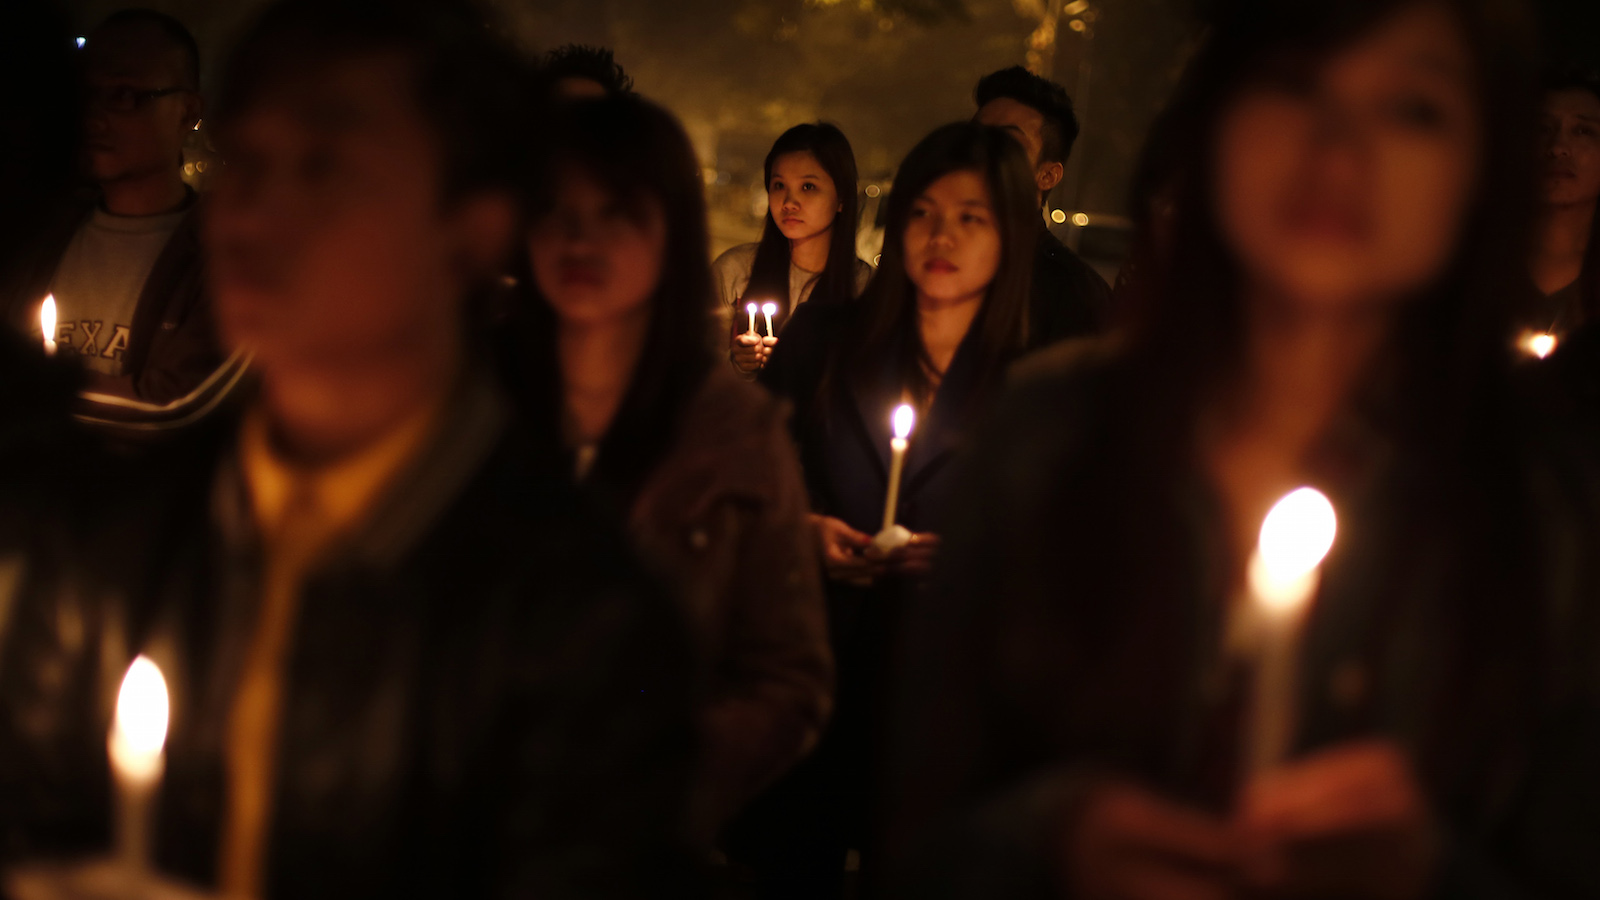 Students from northeast India hold placards during a candlelight vigil in New Delhi February 2, 2014. Hundreds of students on Sunday protested against the beating of an university student from India's northeast, who was allegedly beaten to death by shopkeepers in New Delhi following a row over his appearance and clothing, local media reported.